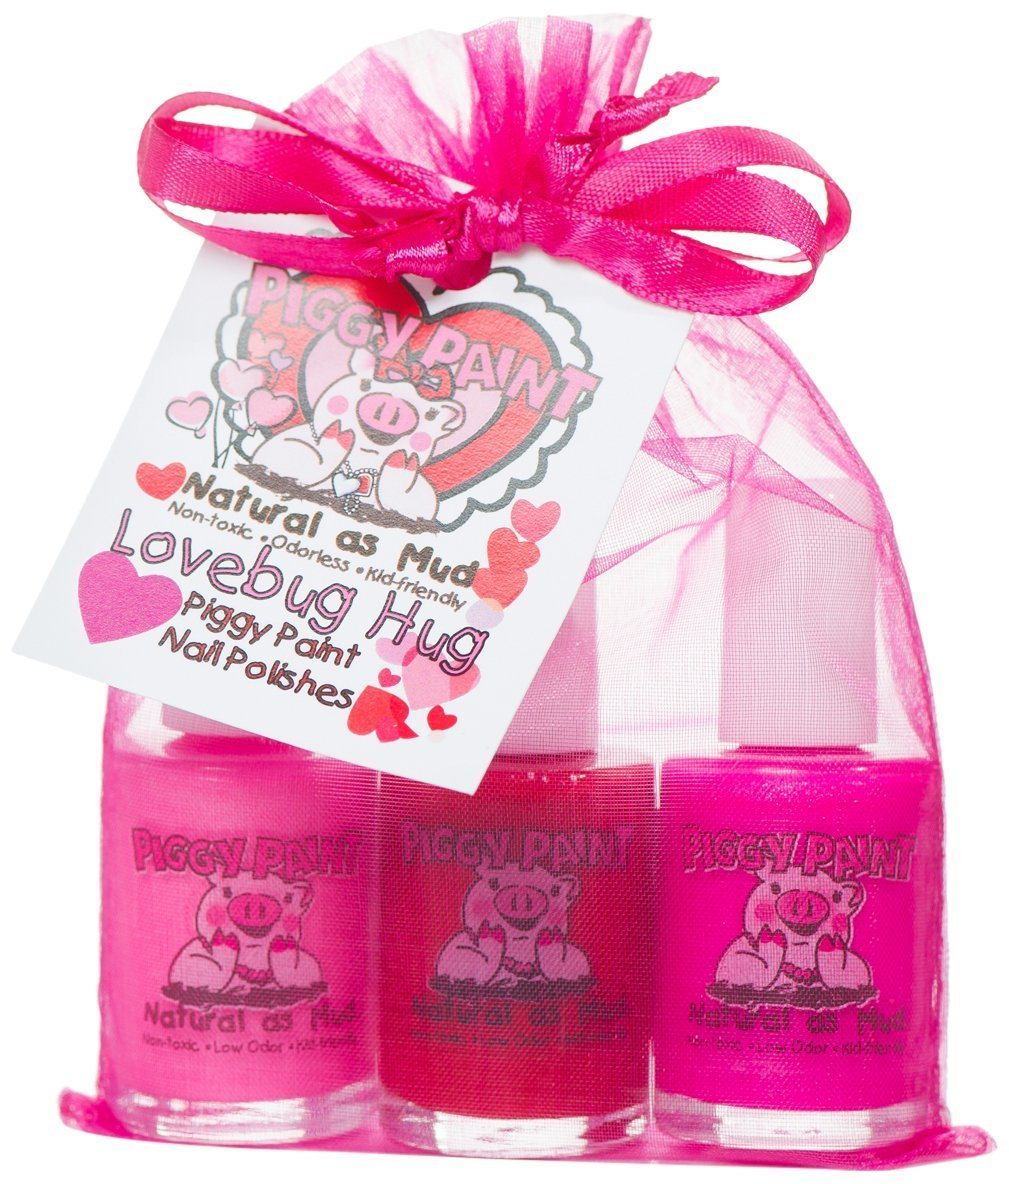 Amazon.com : Piggy Paint Nail Polish Gift Set, Little Miss ...